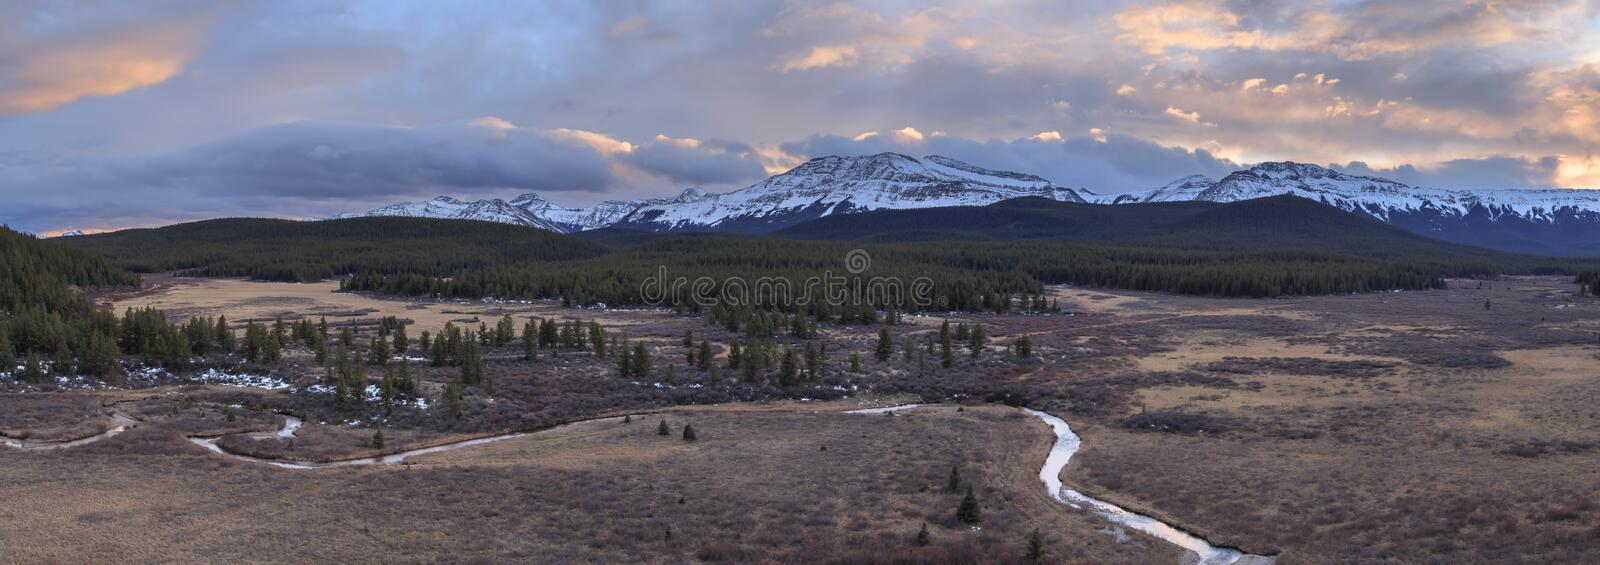 Sunset over the canadian Rocky Mountains in Alberta royalty free stock photography